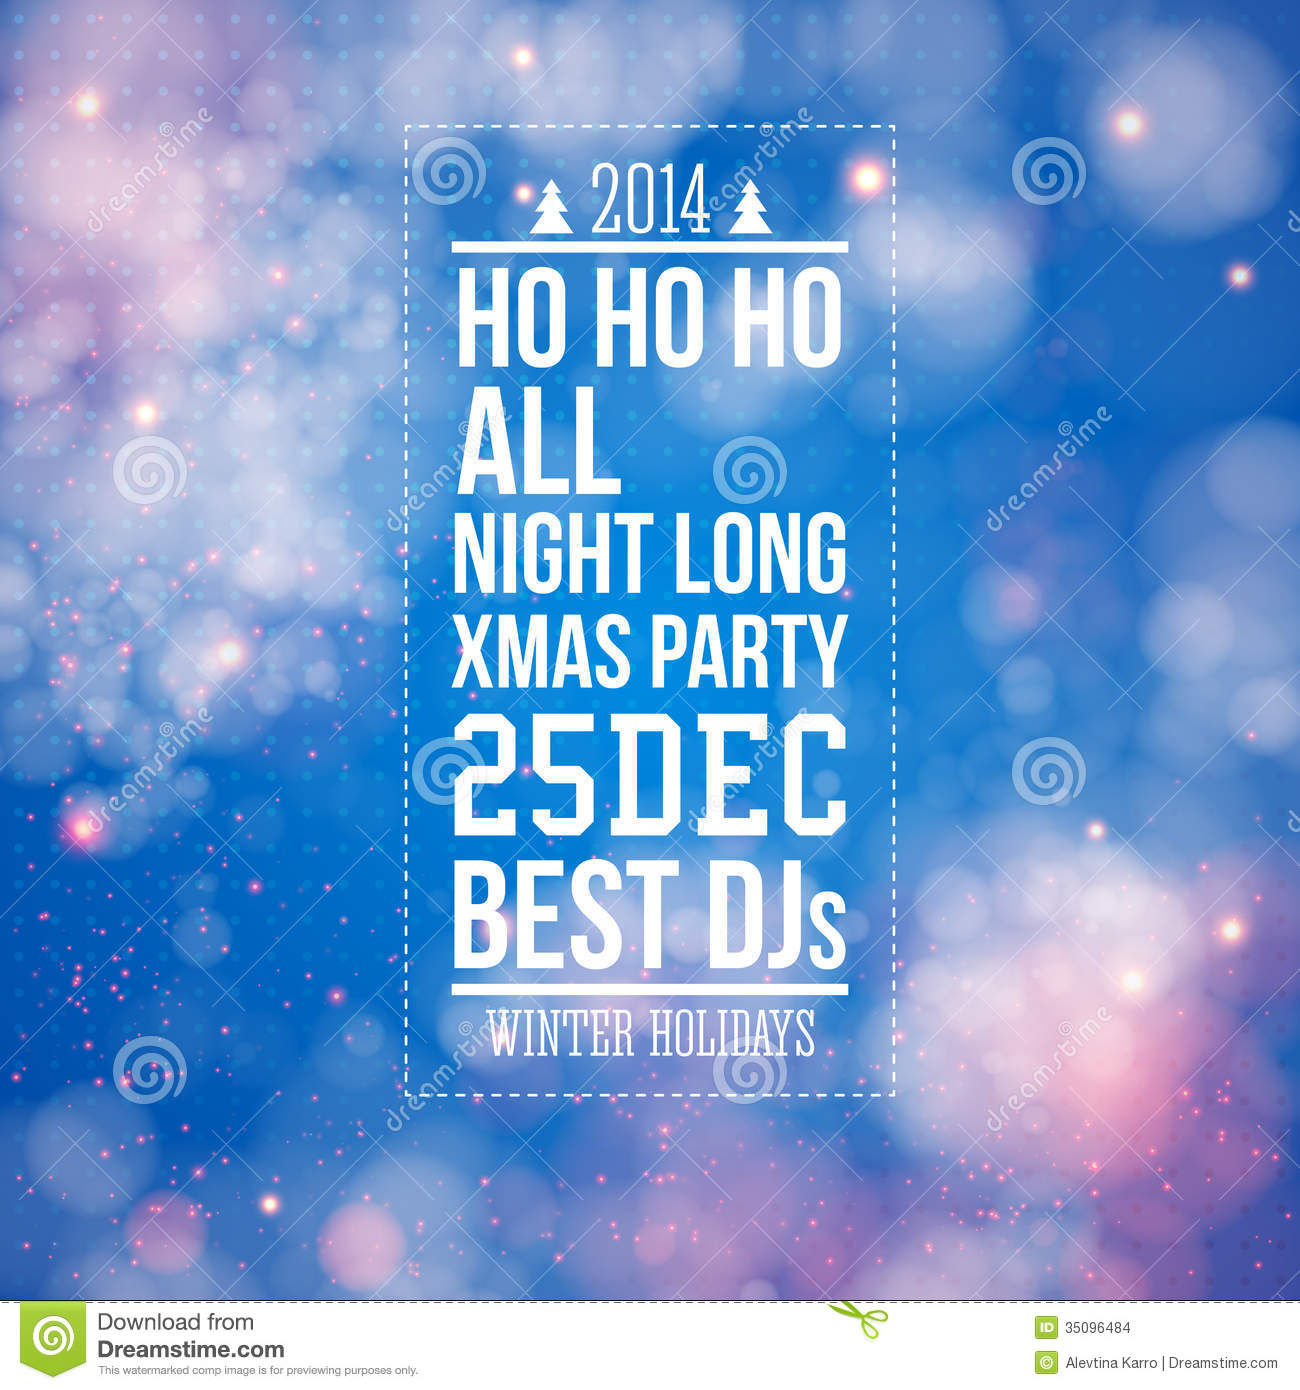 christmas party poster blue shiny background stock images christmas party poster blue shiny background